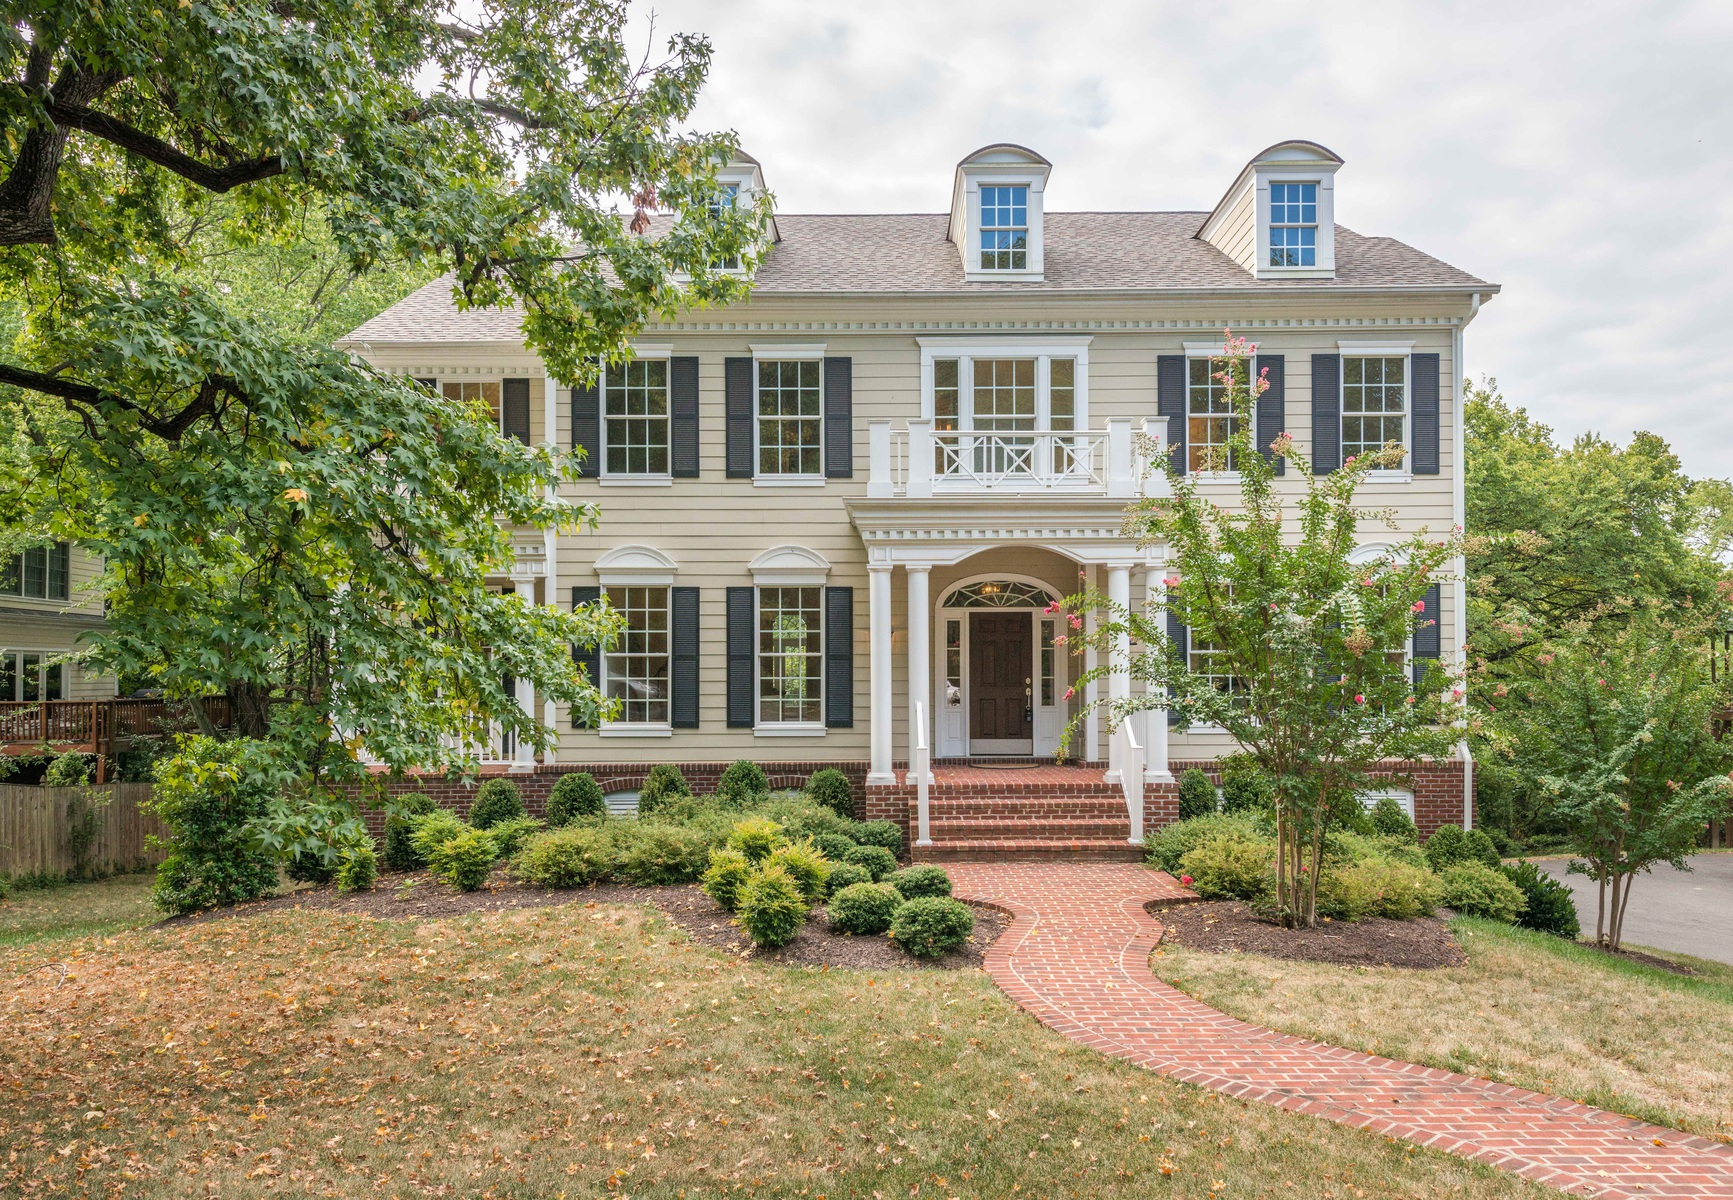 Single Family Home for Sale at Cooper Dawson 104 Quaker Lane N Alexandria, Virginia, 22304 United States